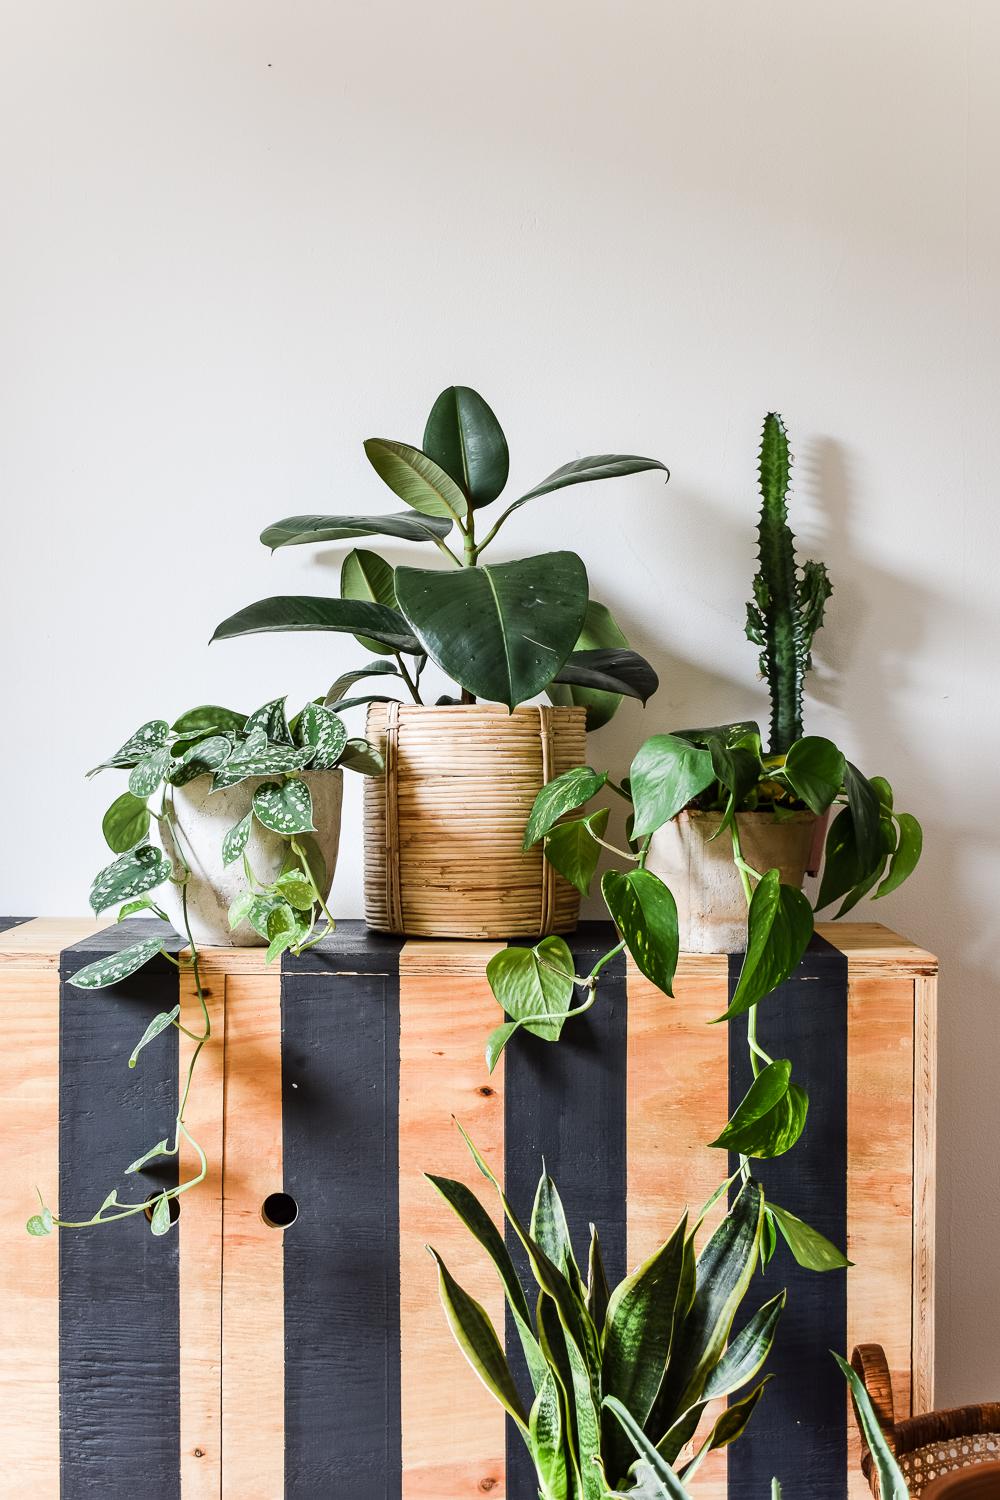 Plants sitting on a side cabinet painted with black striped